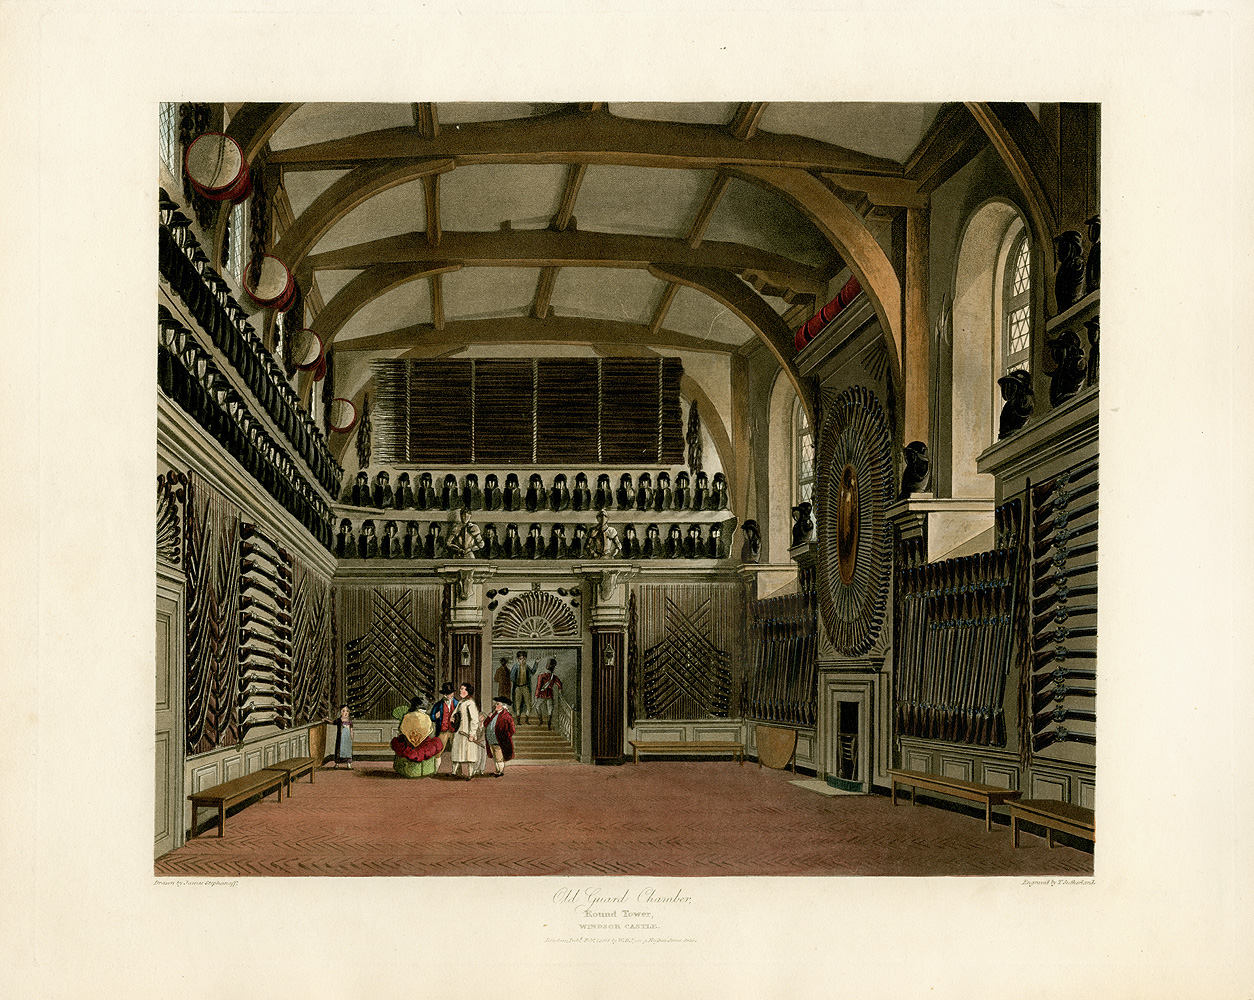 File:Old Guard Chamber, Round Tower, Windsor Castle, from ...